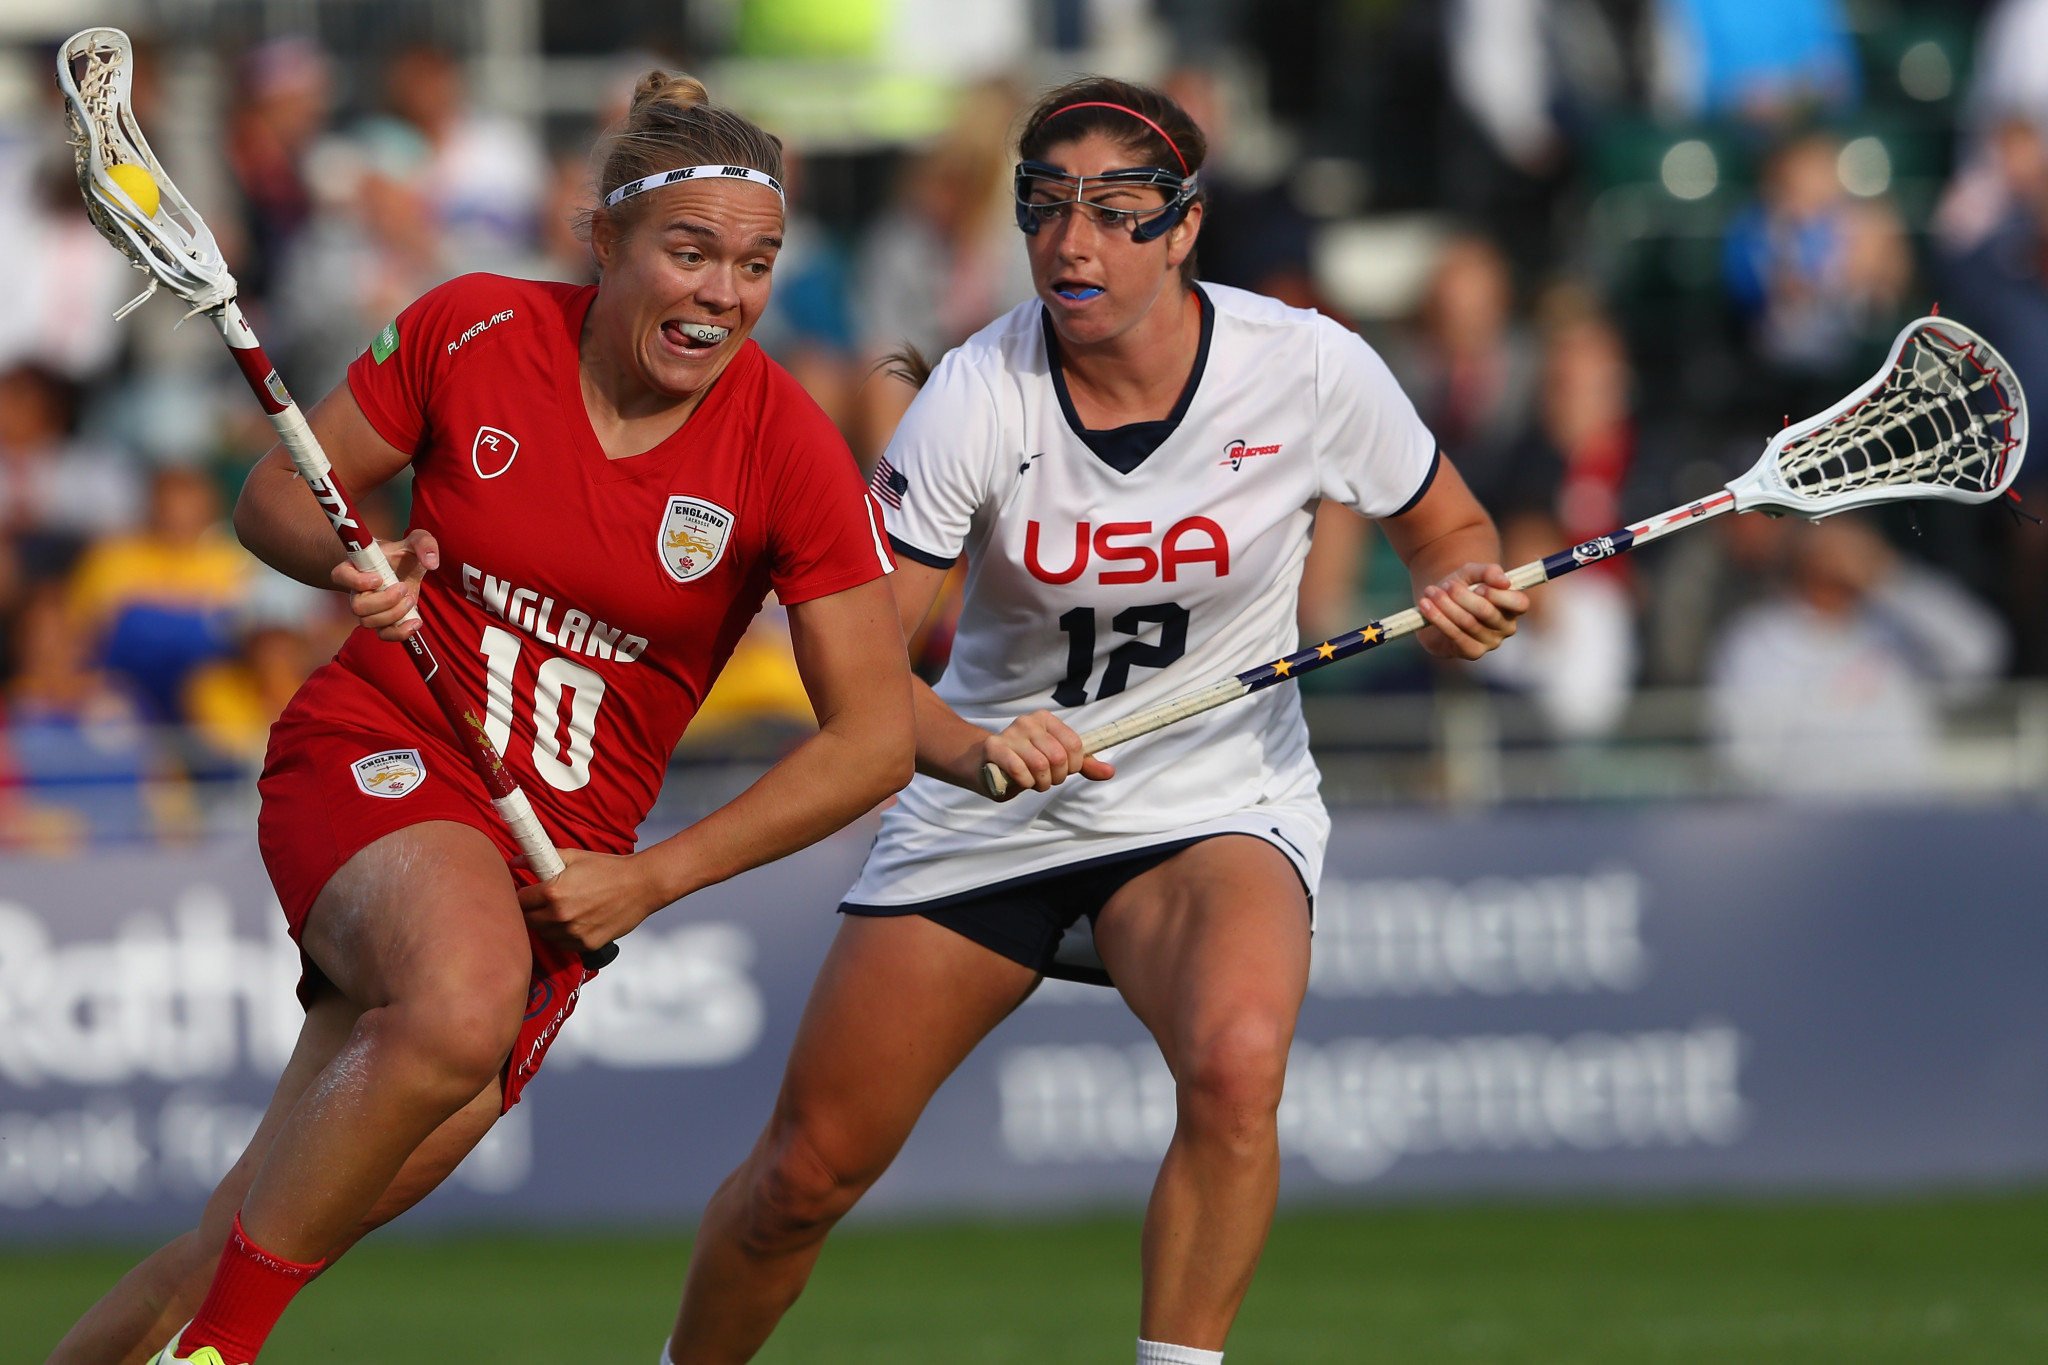 Lacrosse has received provisional recognition from the International Olympic Committee ©Getty Images